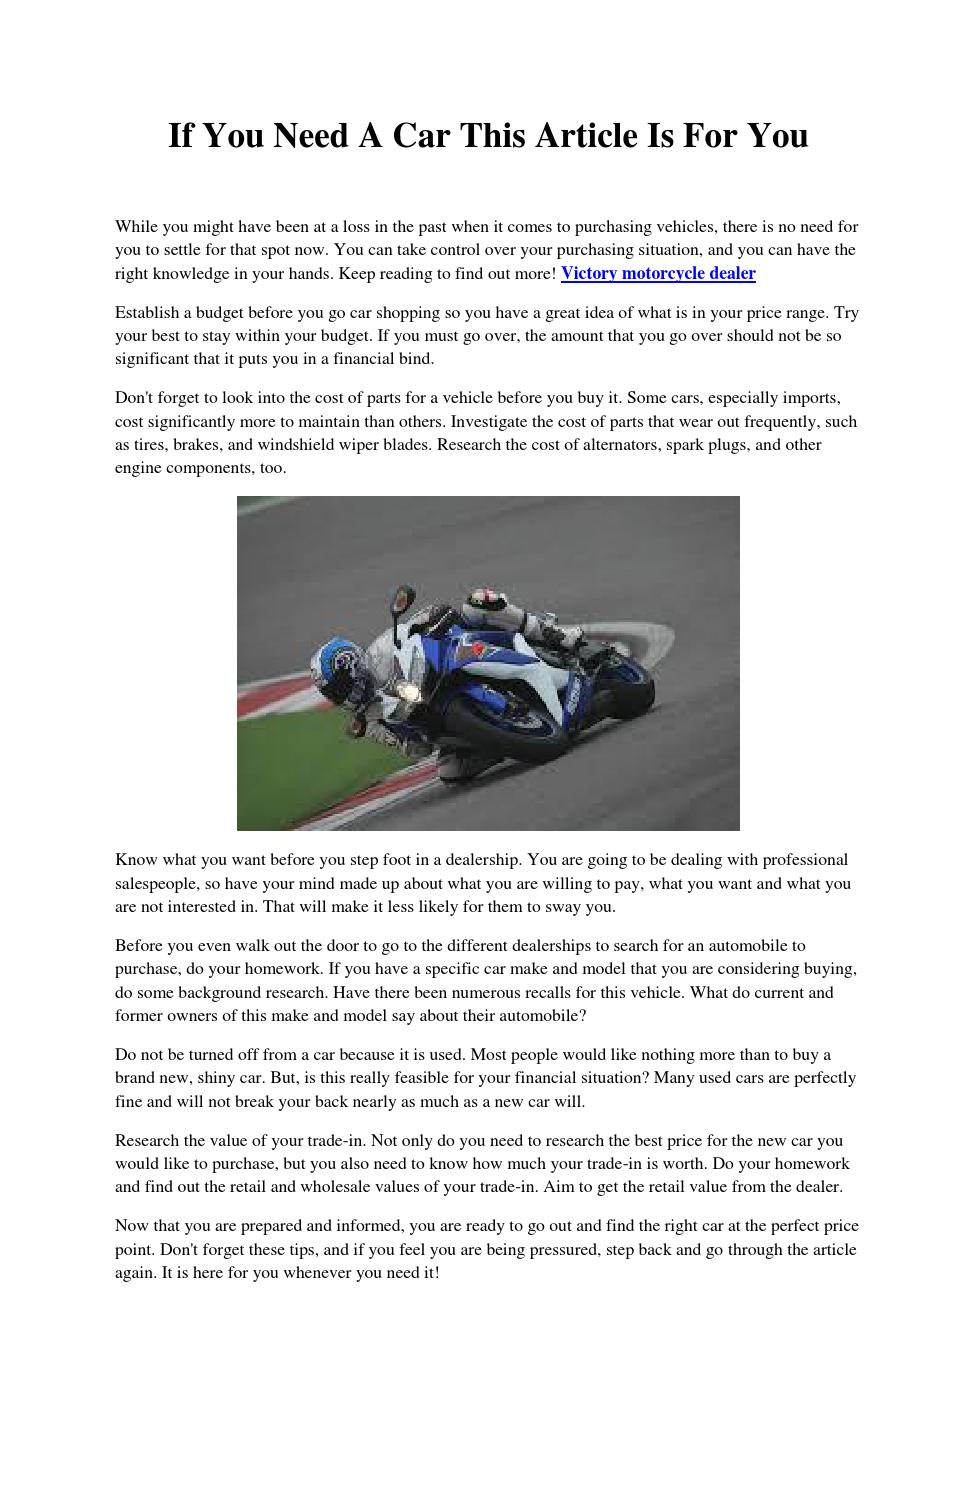 If You Need A Car This Article Is For By Leeromero67 Issuu Find Out What Type Of Brakes Your Has And How To Maintain Them